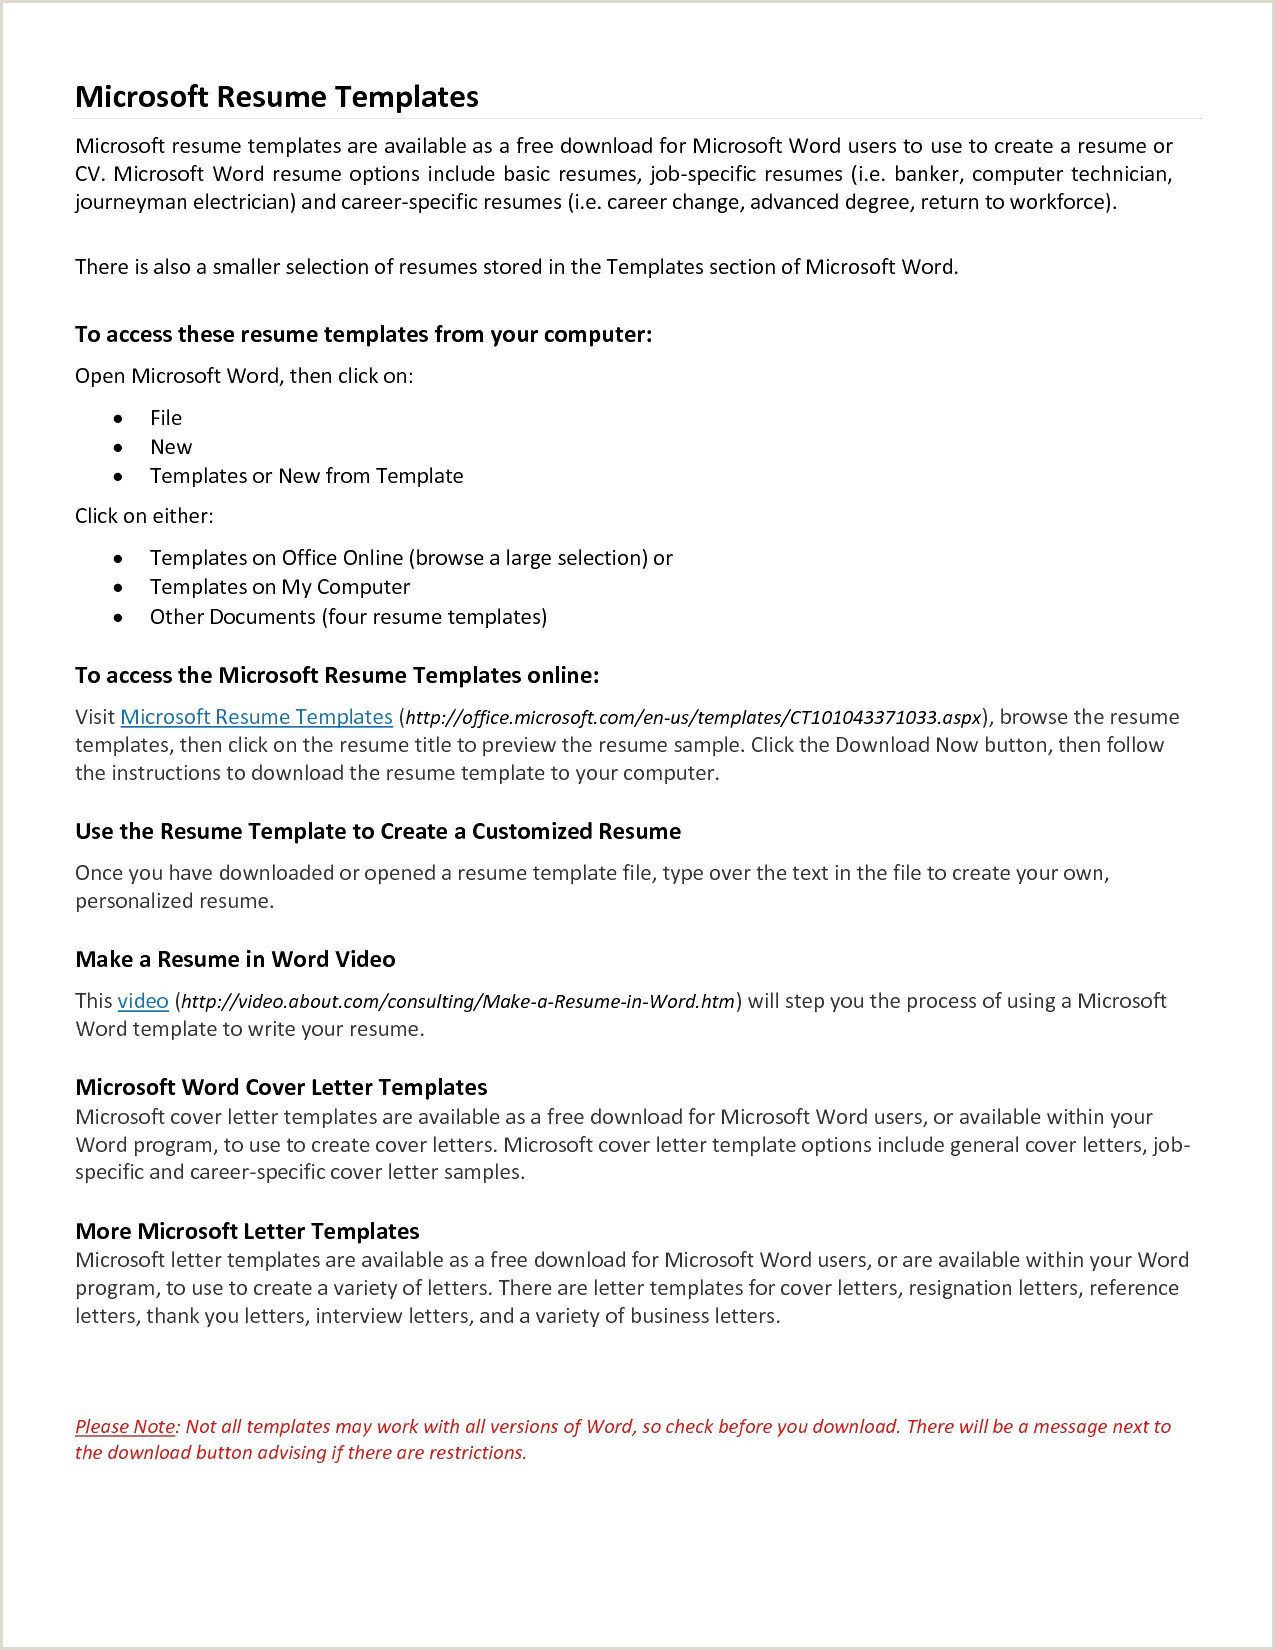 Resume format for Electrician Job Template for Resume Microsoft Word – Salumguilher